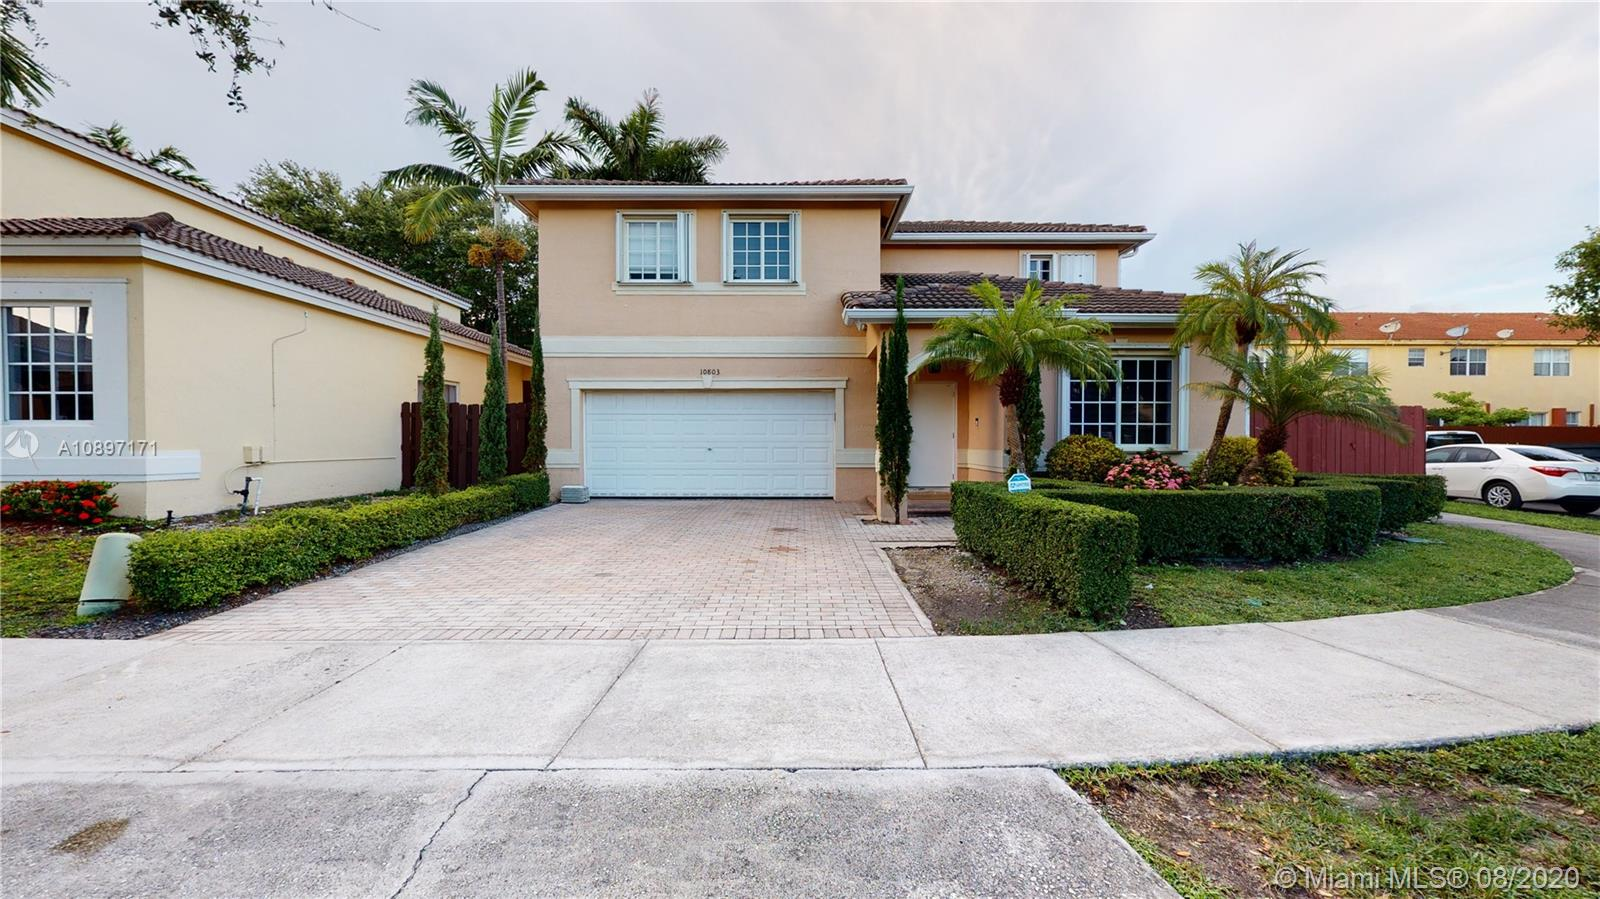 10803 NW 53rd Ln #10803 For Sale A10897171, FL